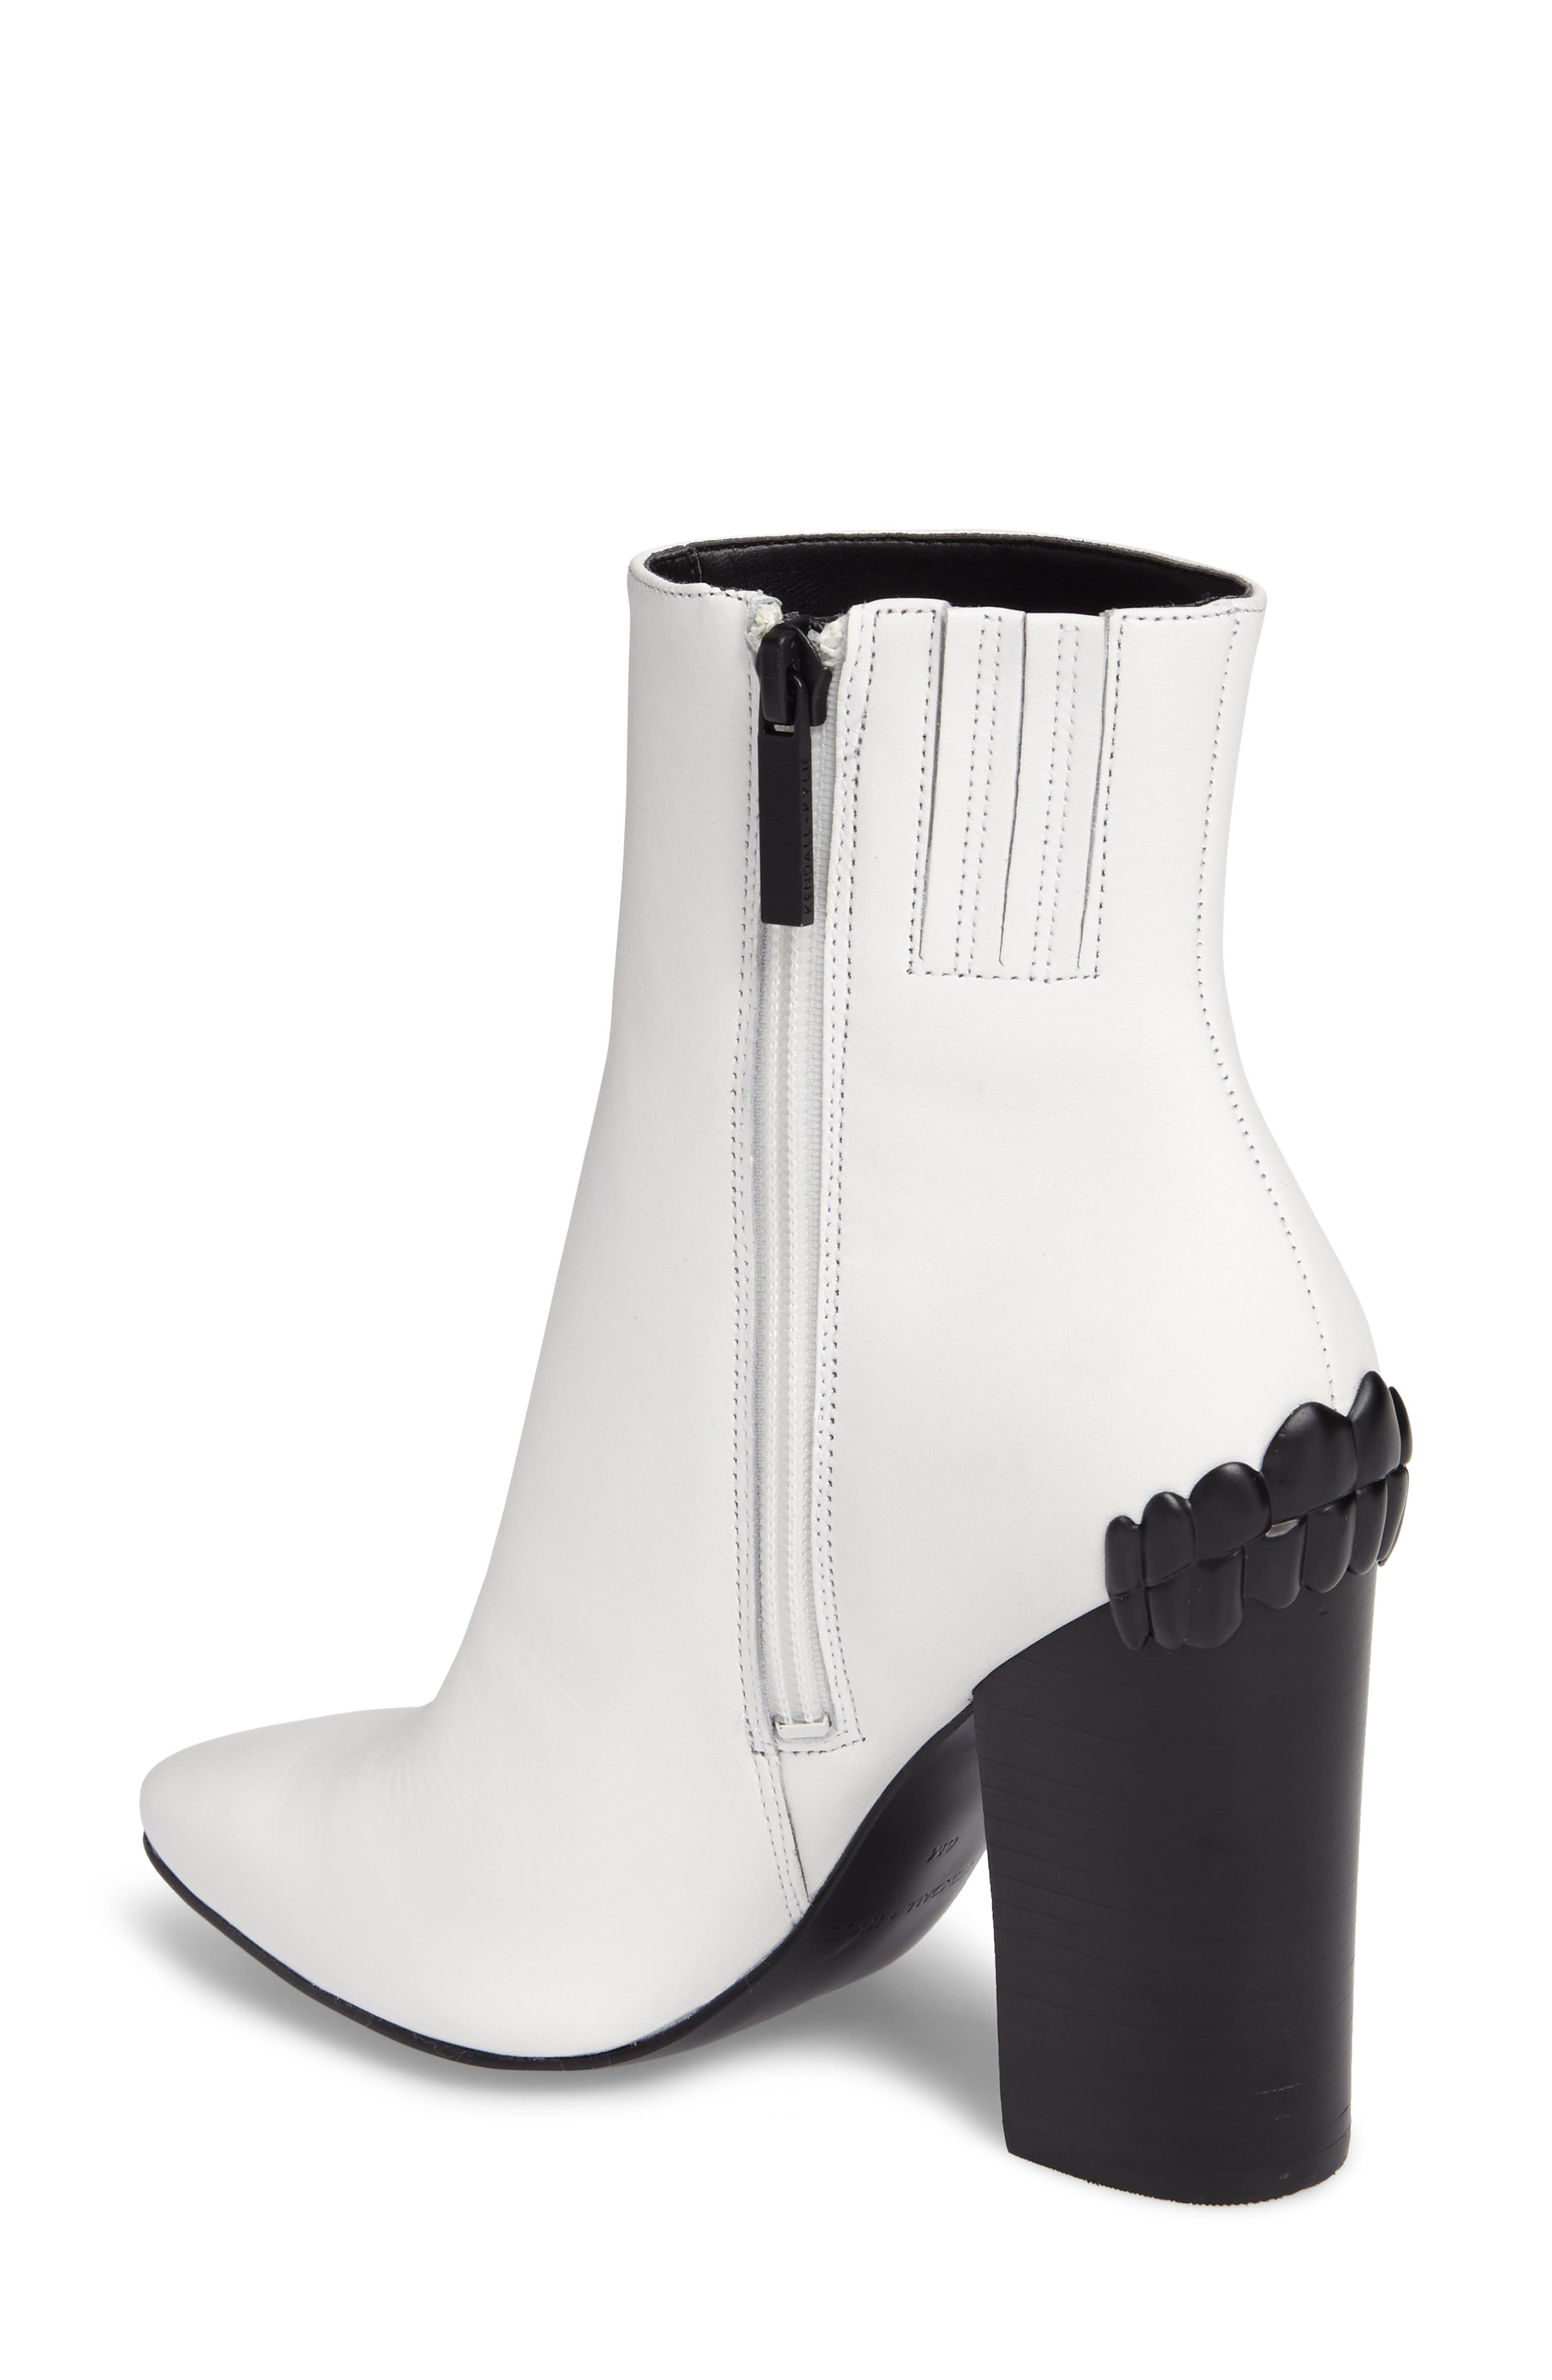 Haedyn Bootie,                             Alternate thumbnail 2, color,                             White Leather